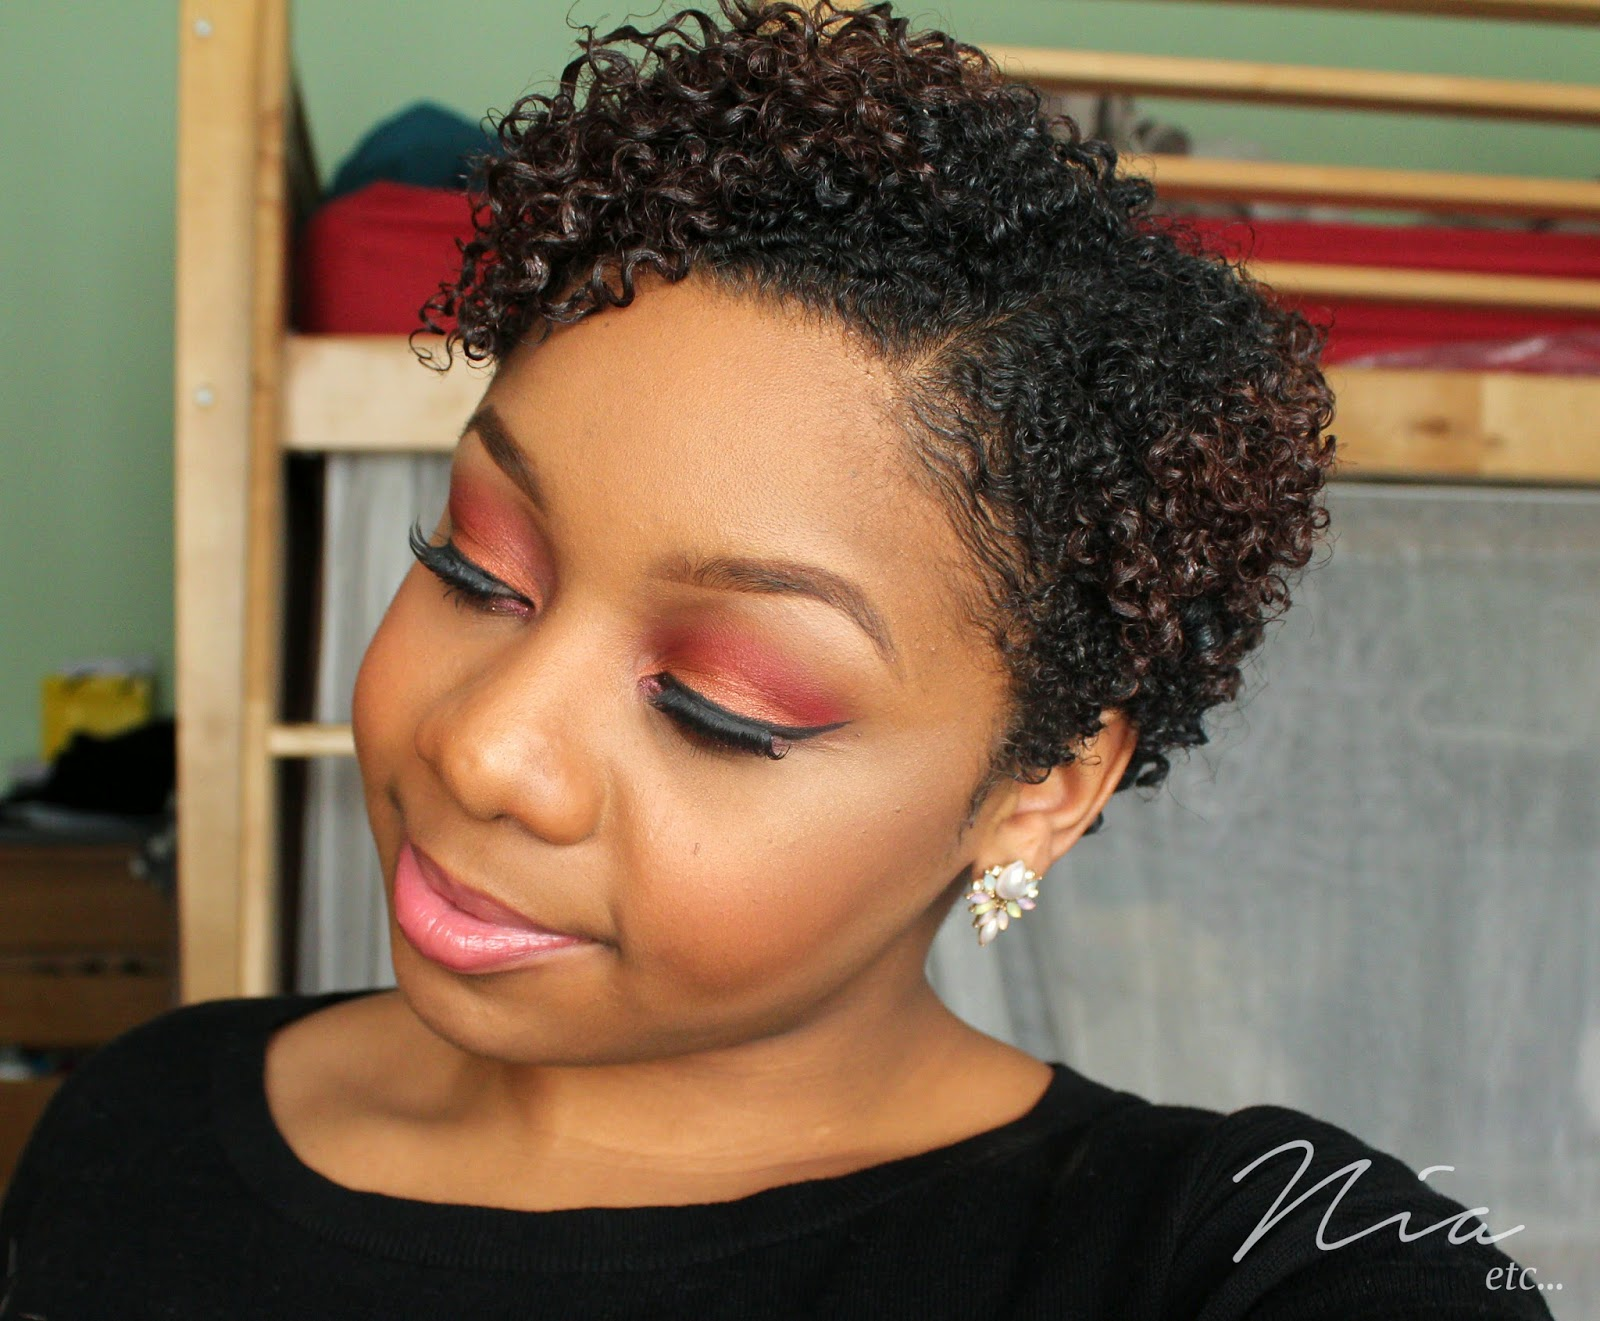 Summertime Orange and Red MakeUp Look 7